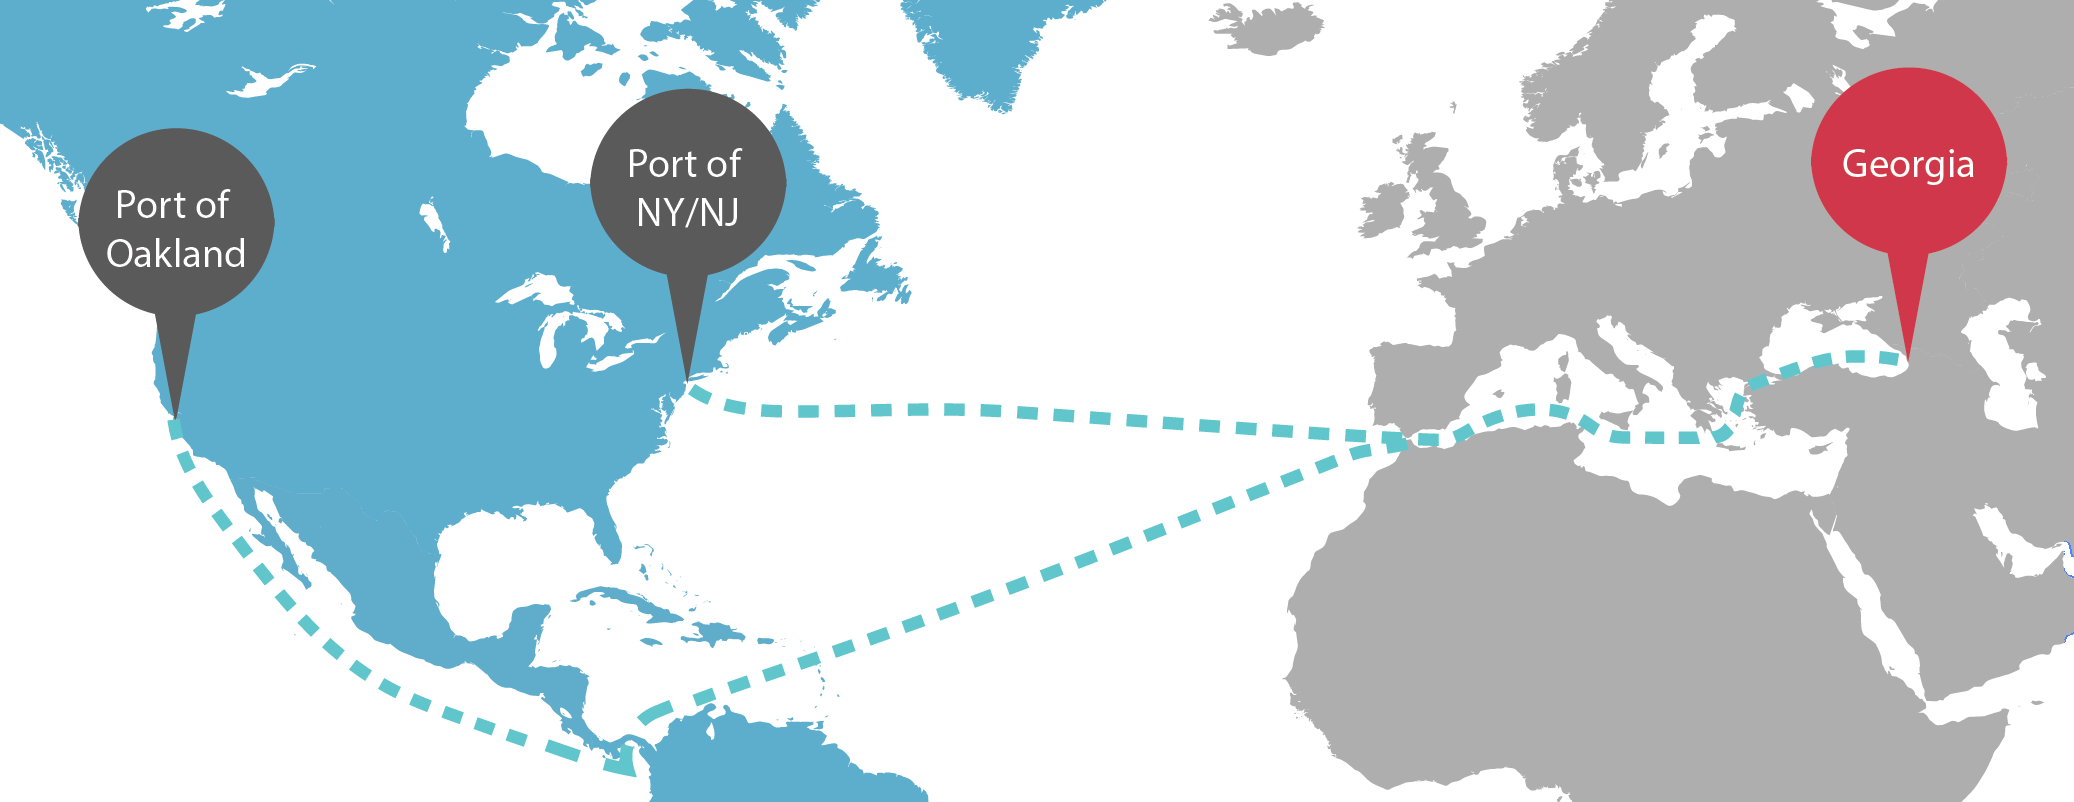 USA to Georgia container shipping route